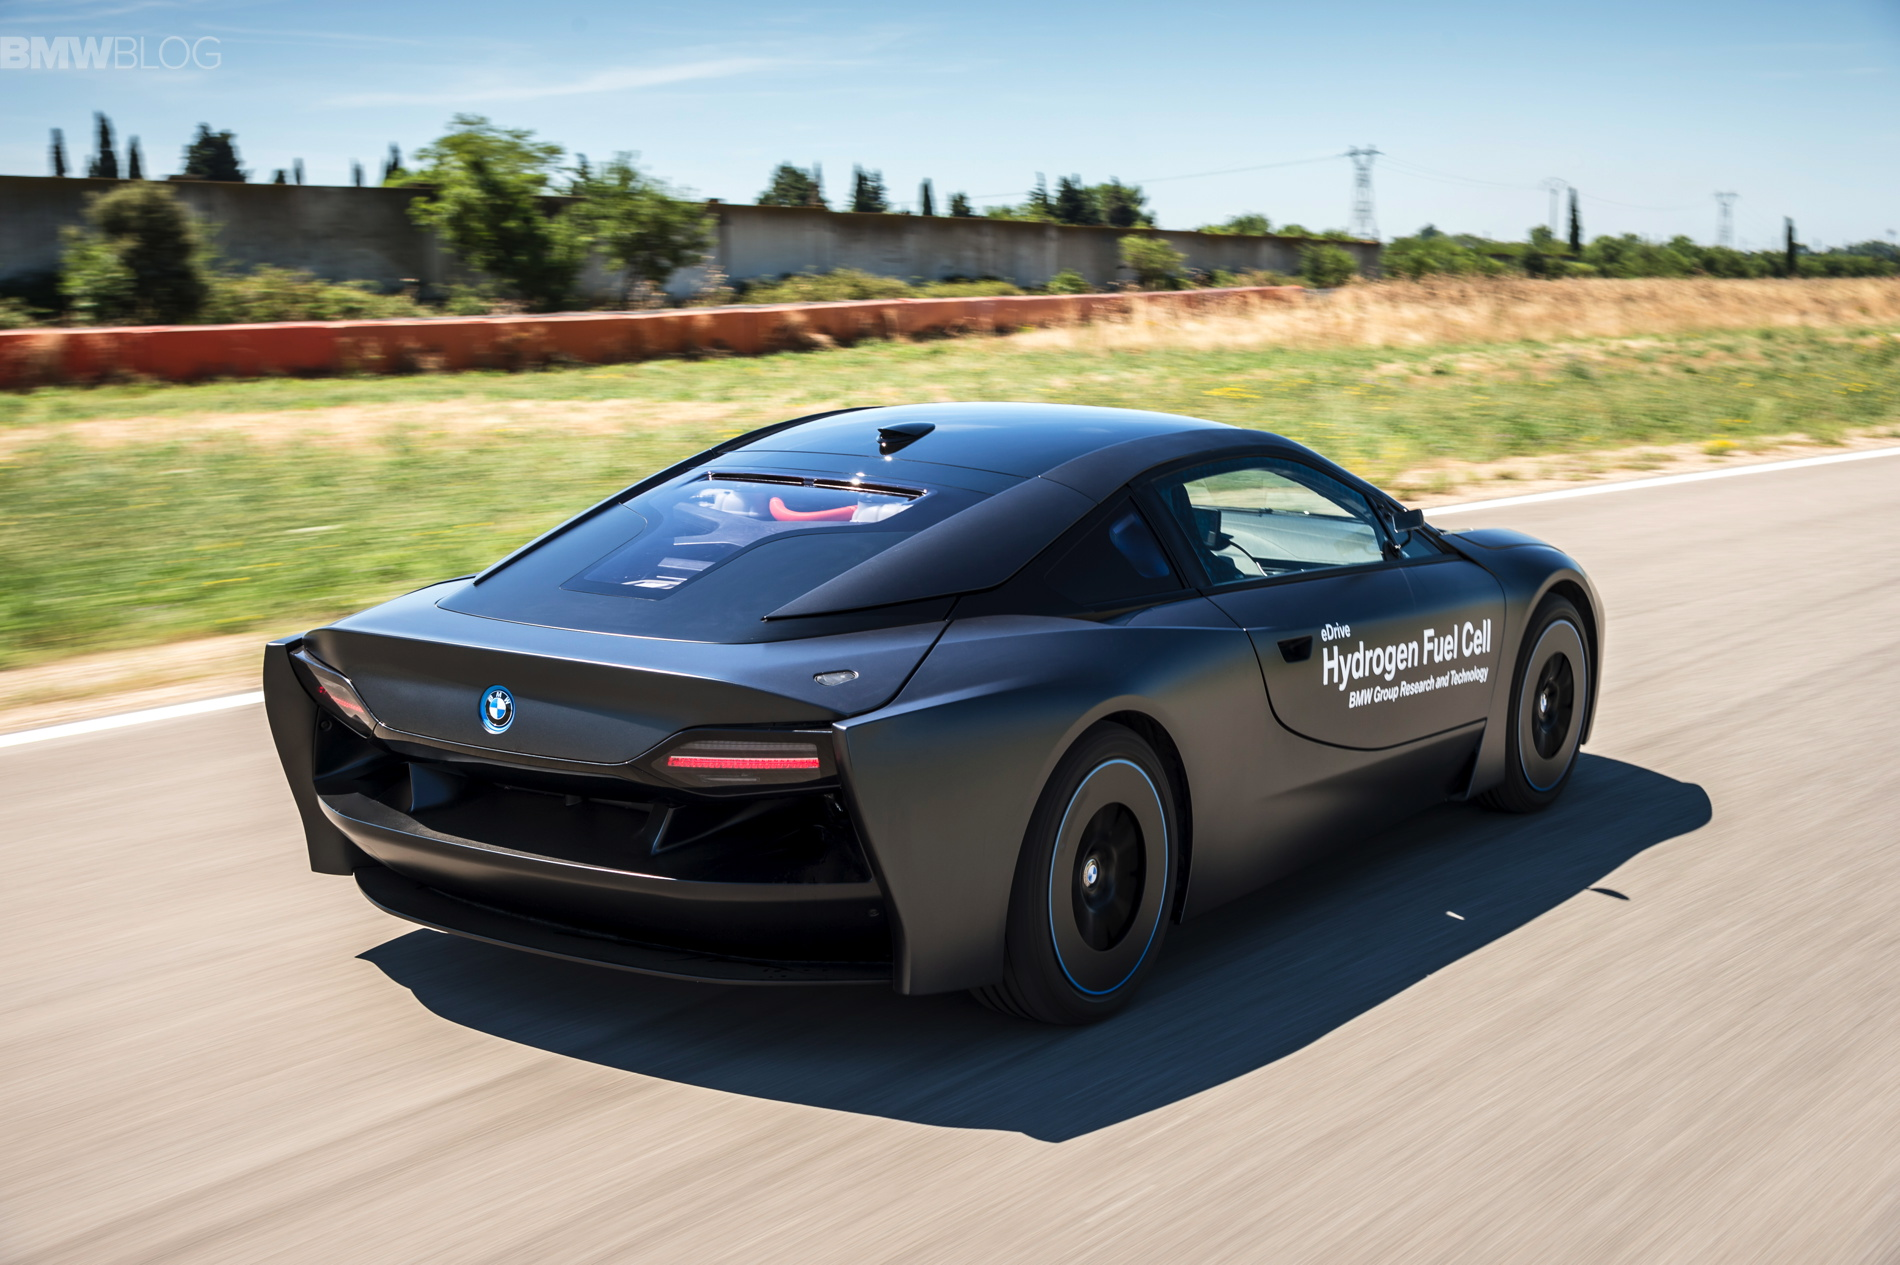 Bmw Once Built A Hydrogen Fuel Cell I8